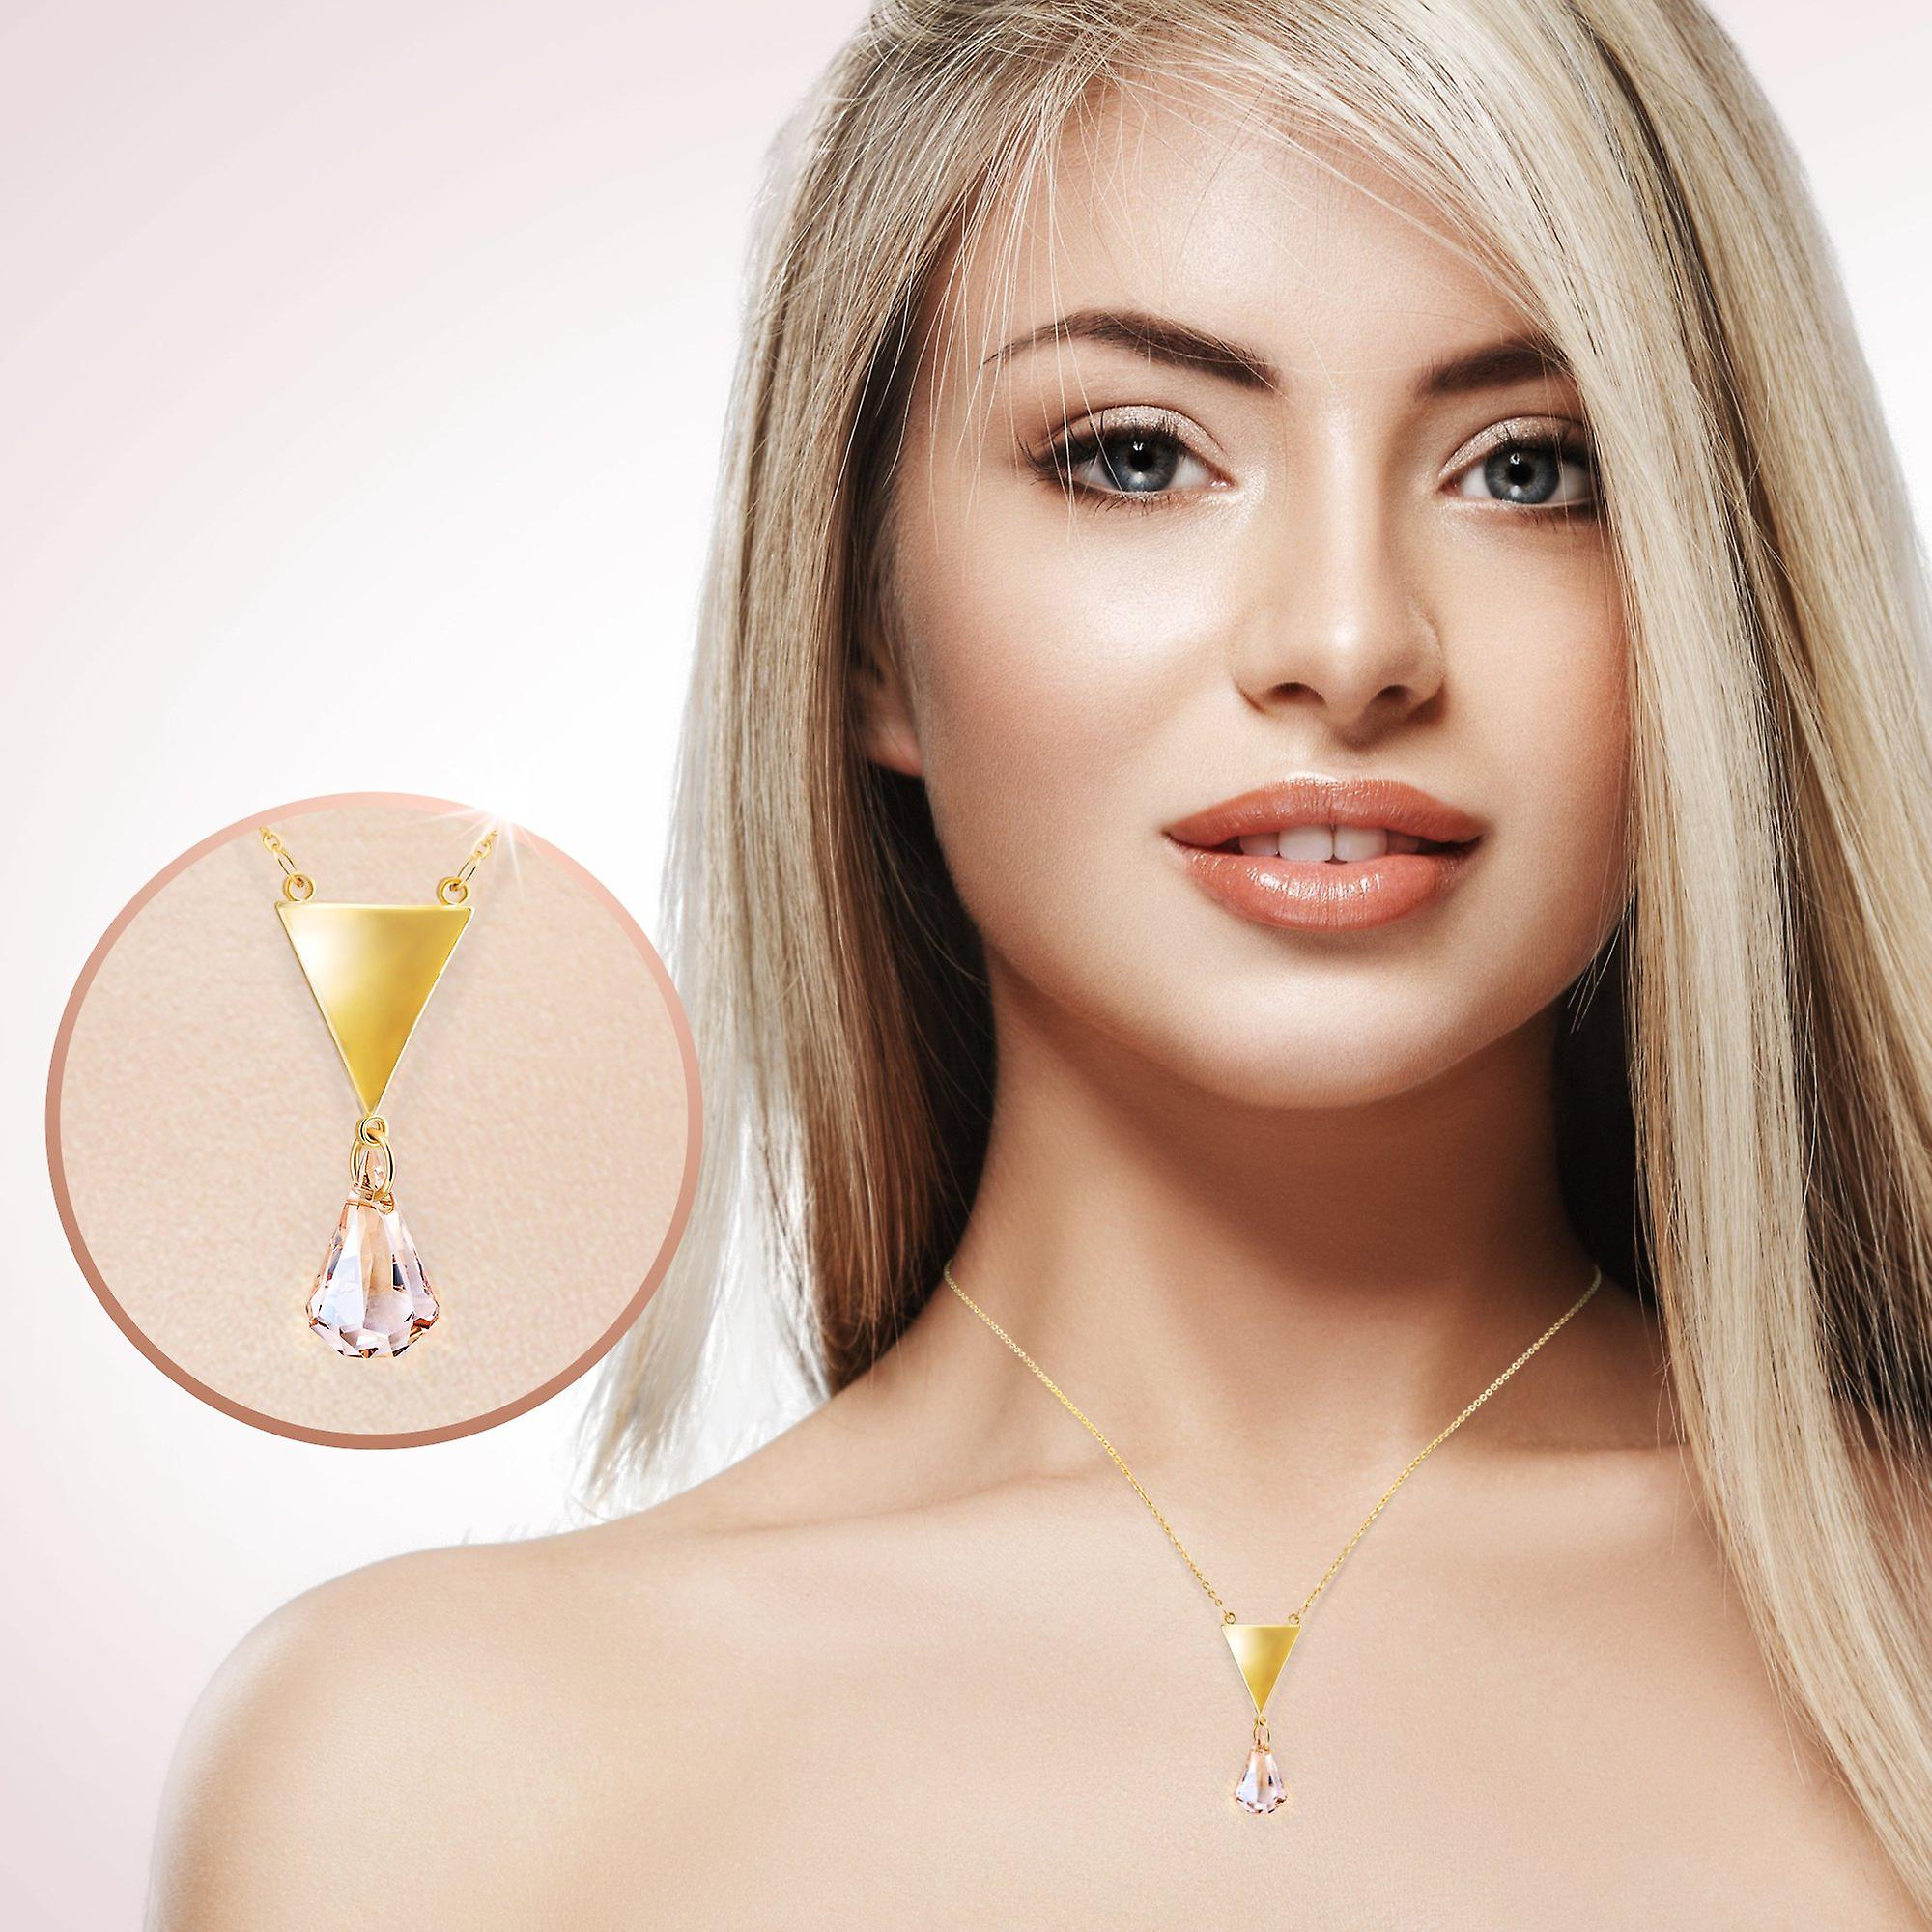 Gold plated necklace with swarovski crystal. pendant necklace. by 2splendid. gift box included. nqz004-gc